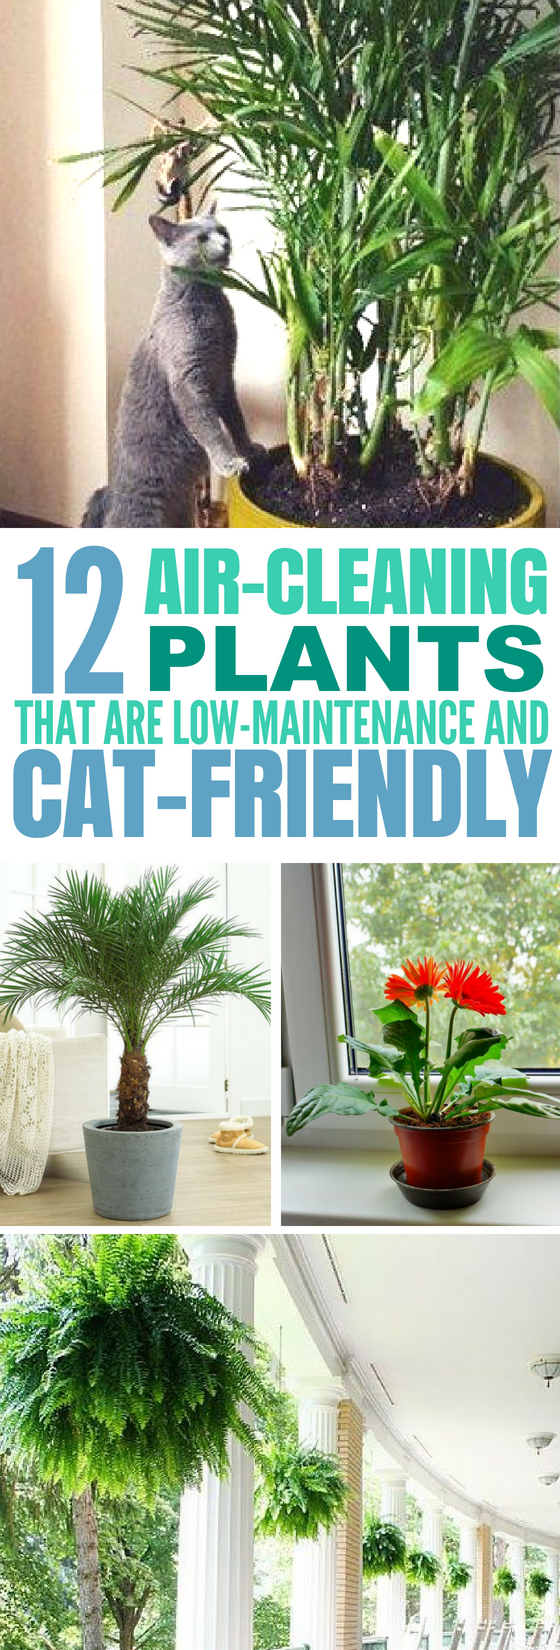 12 Common Houseplants Safe For Cats That Filter Your Air Air Cleaning Plants Common House Plants Houseplants Safe For Cats